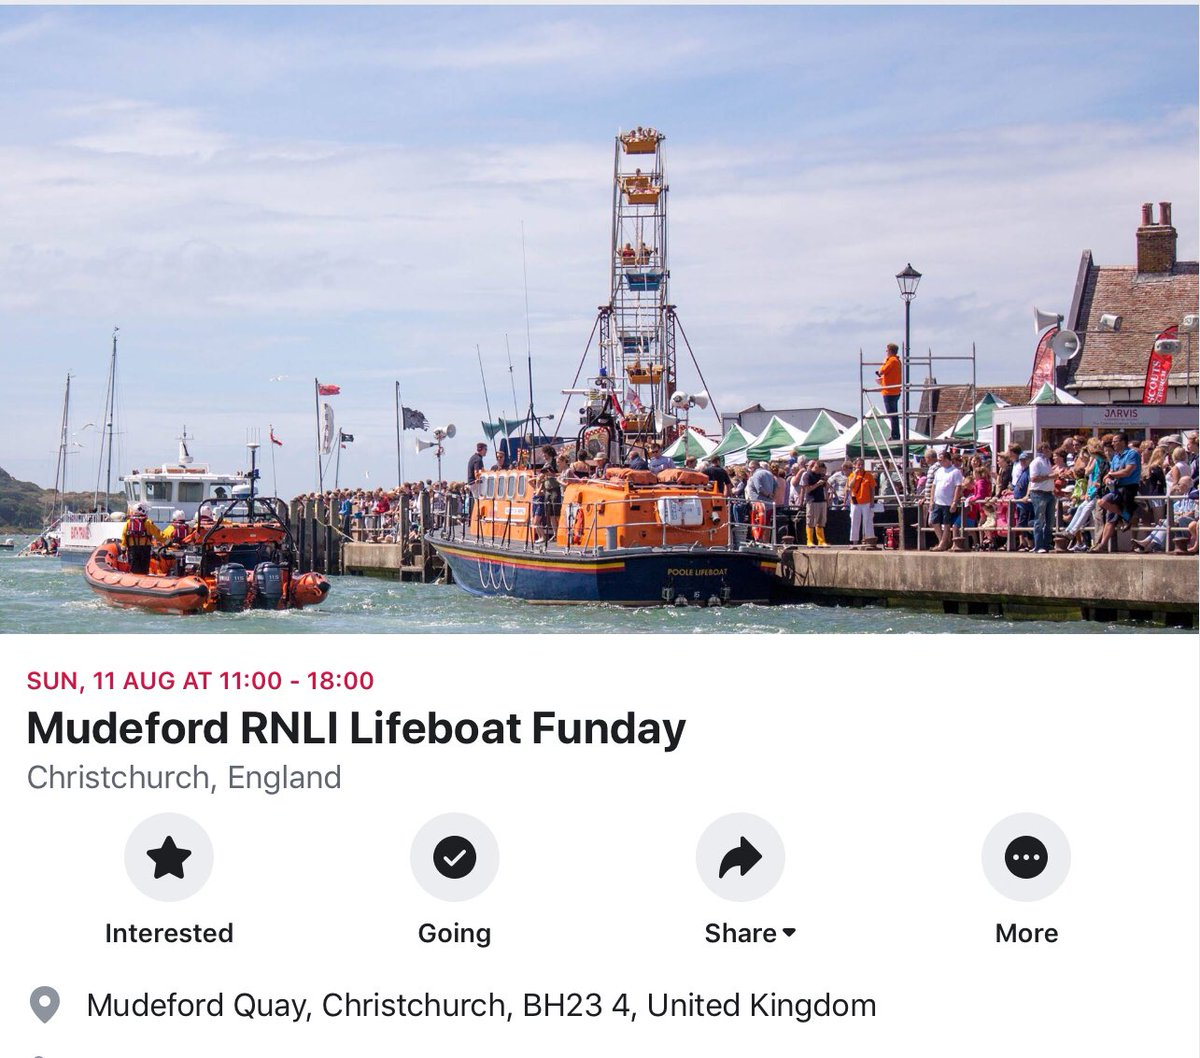 If you're down on Mudeford Quay this Sunday, look out for Pink Champagne Dragon Boat Team, we will be opening the programme of events at 12 midday  #dragonboat #RNLI #mudefordquay #Christchurch #whatsonindorset @WhatsOnInDorset #christchurchharbour #dorset<br>http://pic.twitter.com/LFPYocwXh3